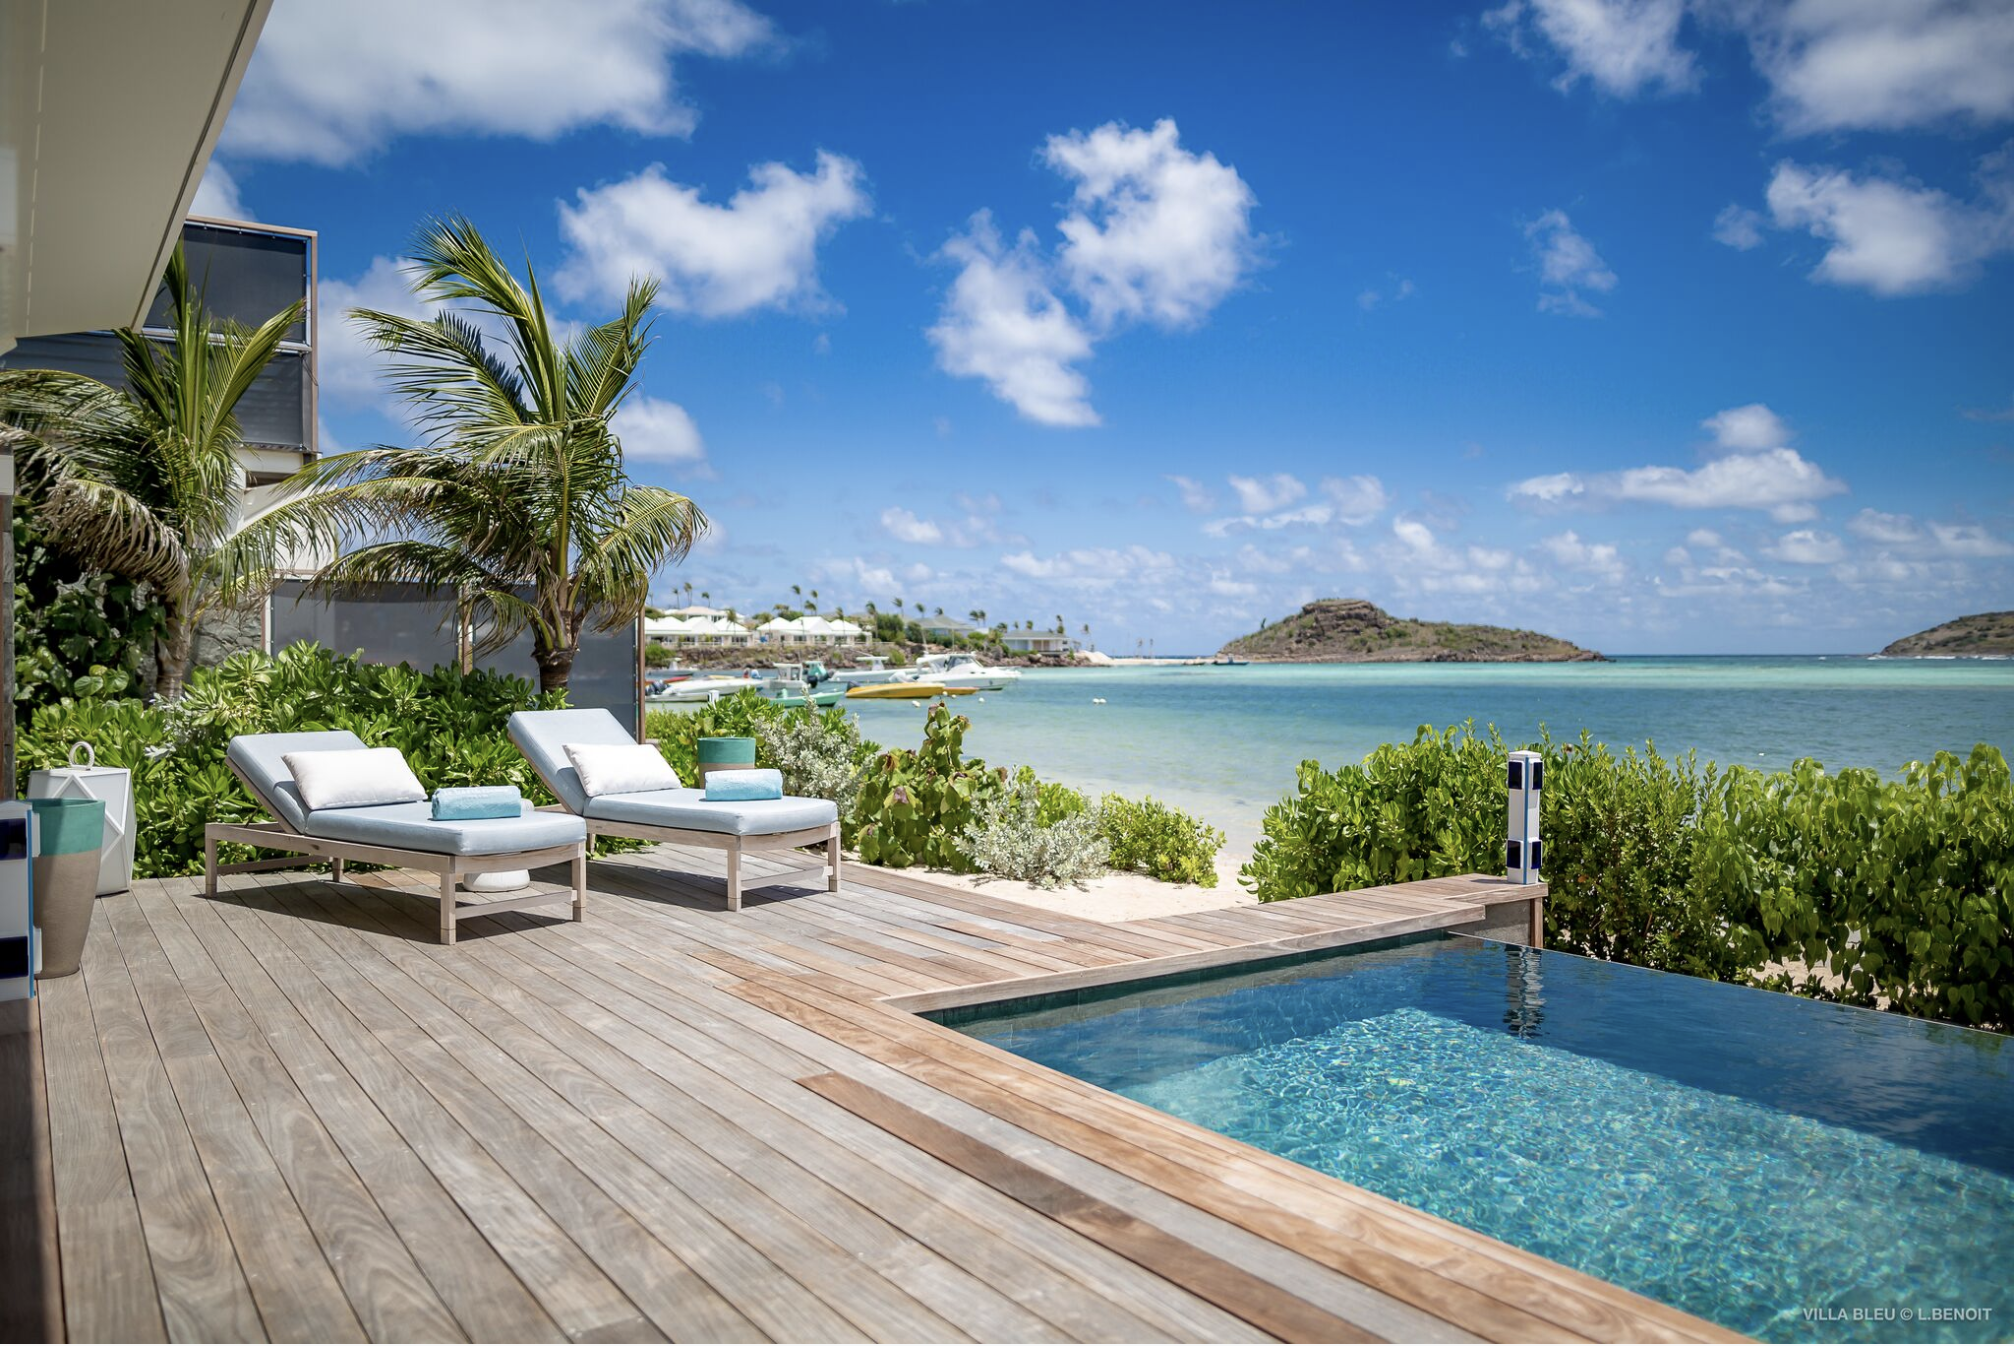 Best Island Beaches For Partying Mykonos St Barts: St. Barts: A Caribbean Holiday Getaway